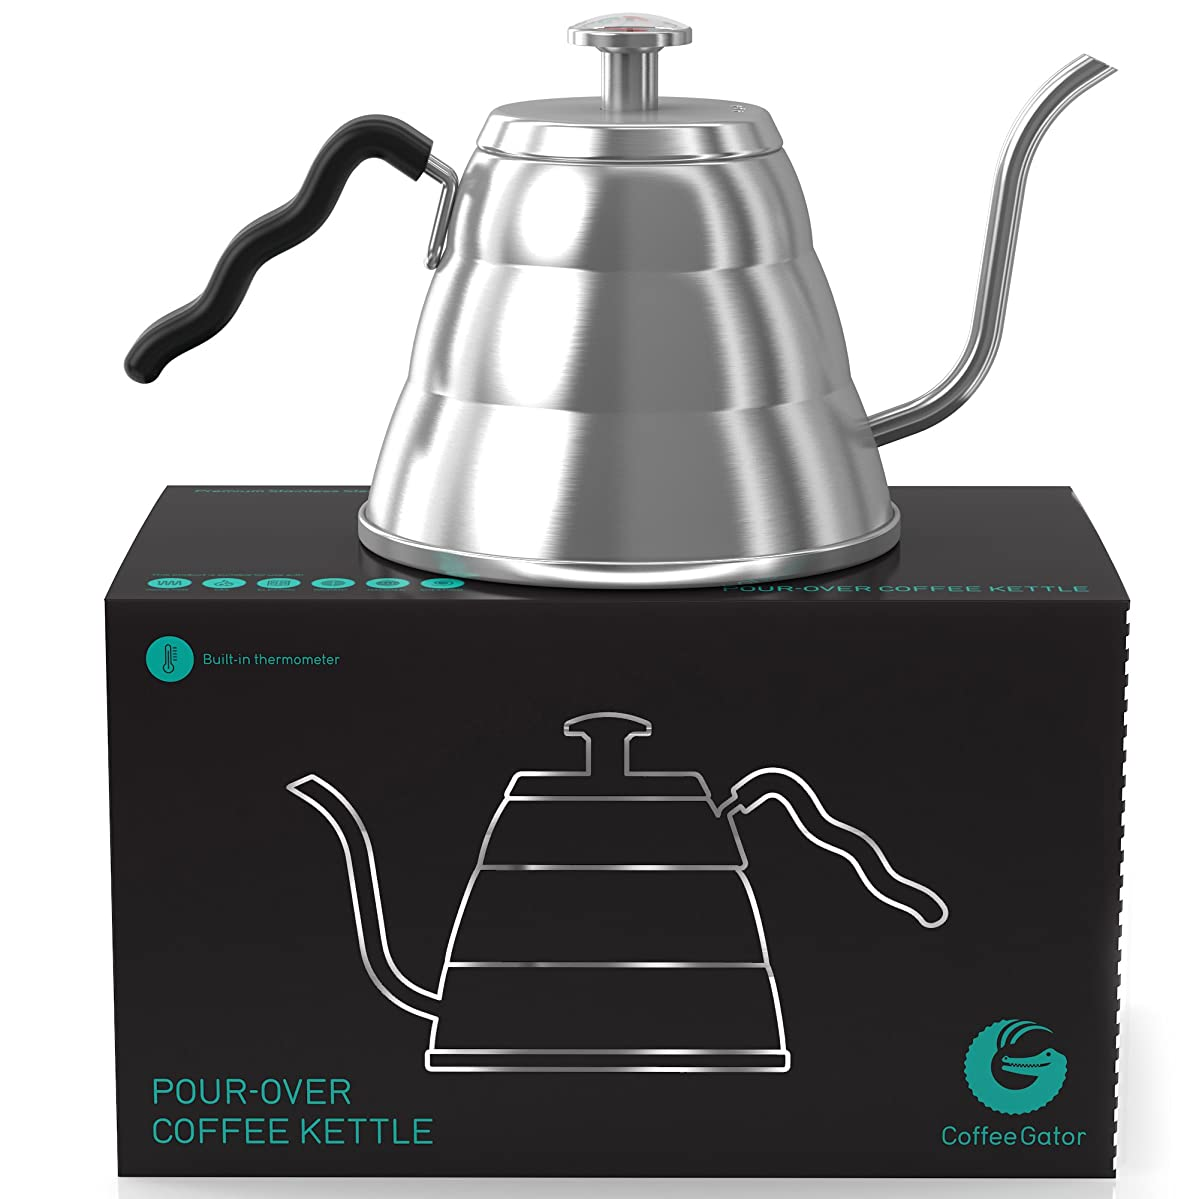 Coffee Gator Pour Over Kettle - Gooseneck Spout and Thermometer for Drip Coffee and Tea - 34floz